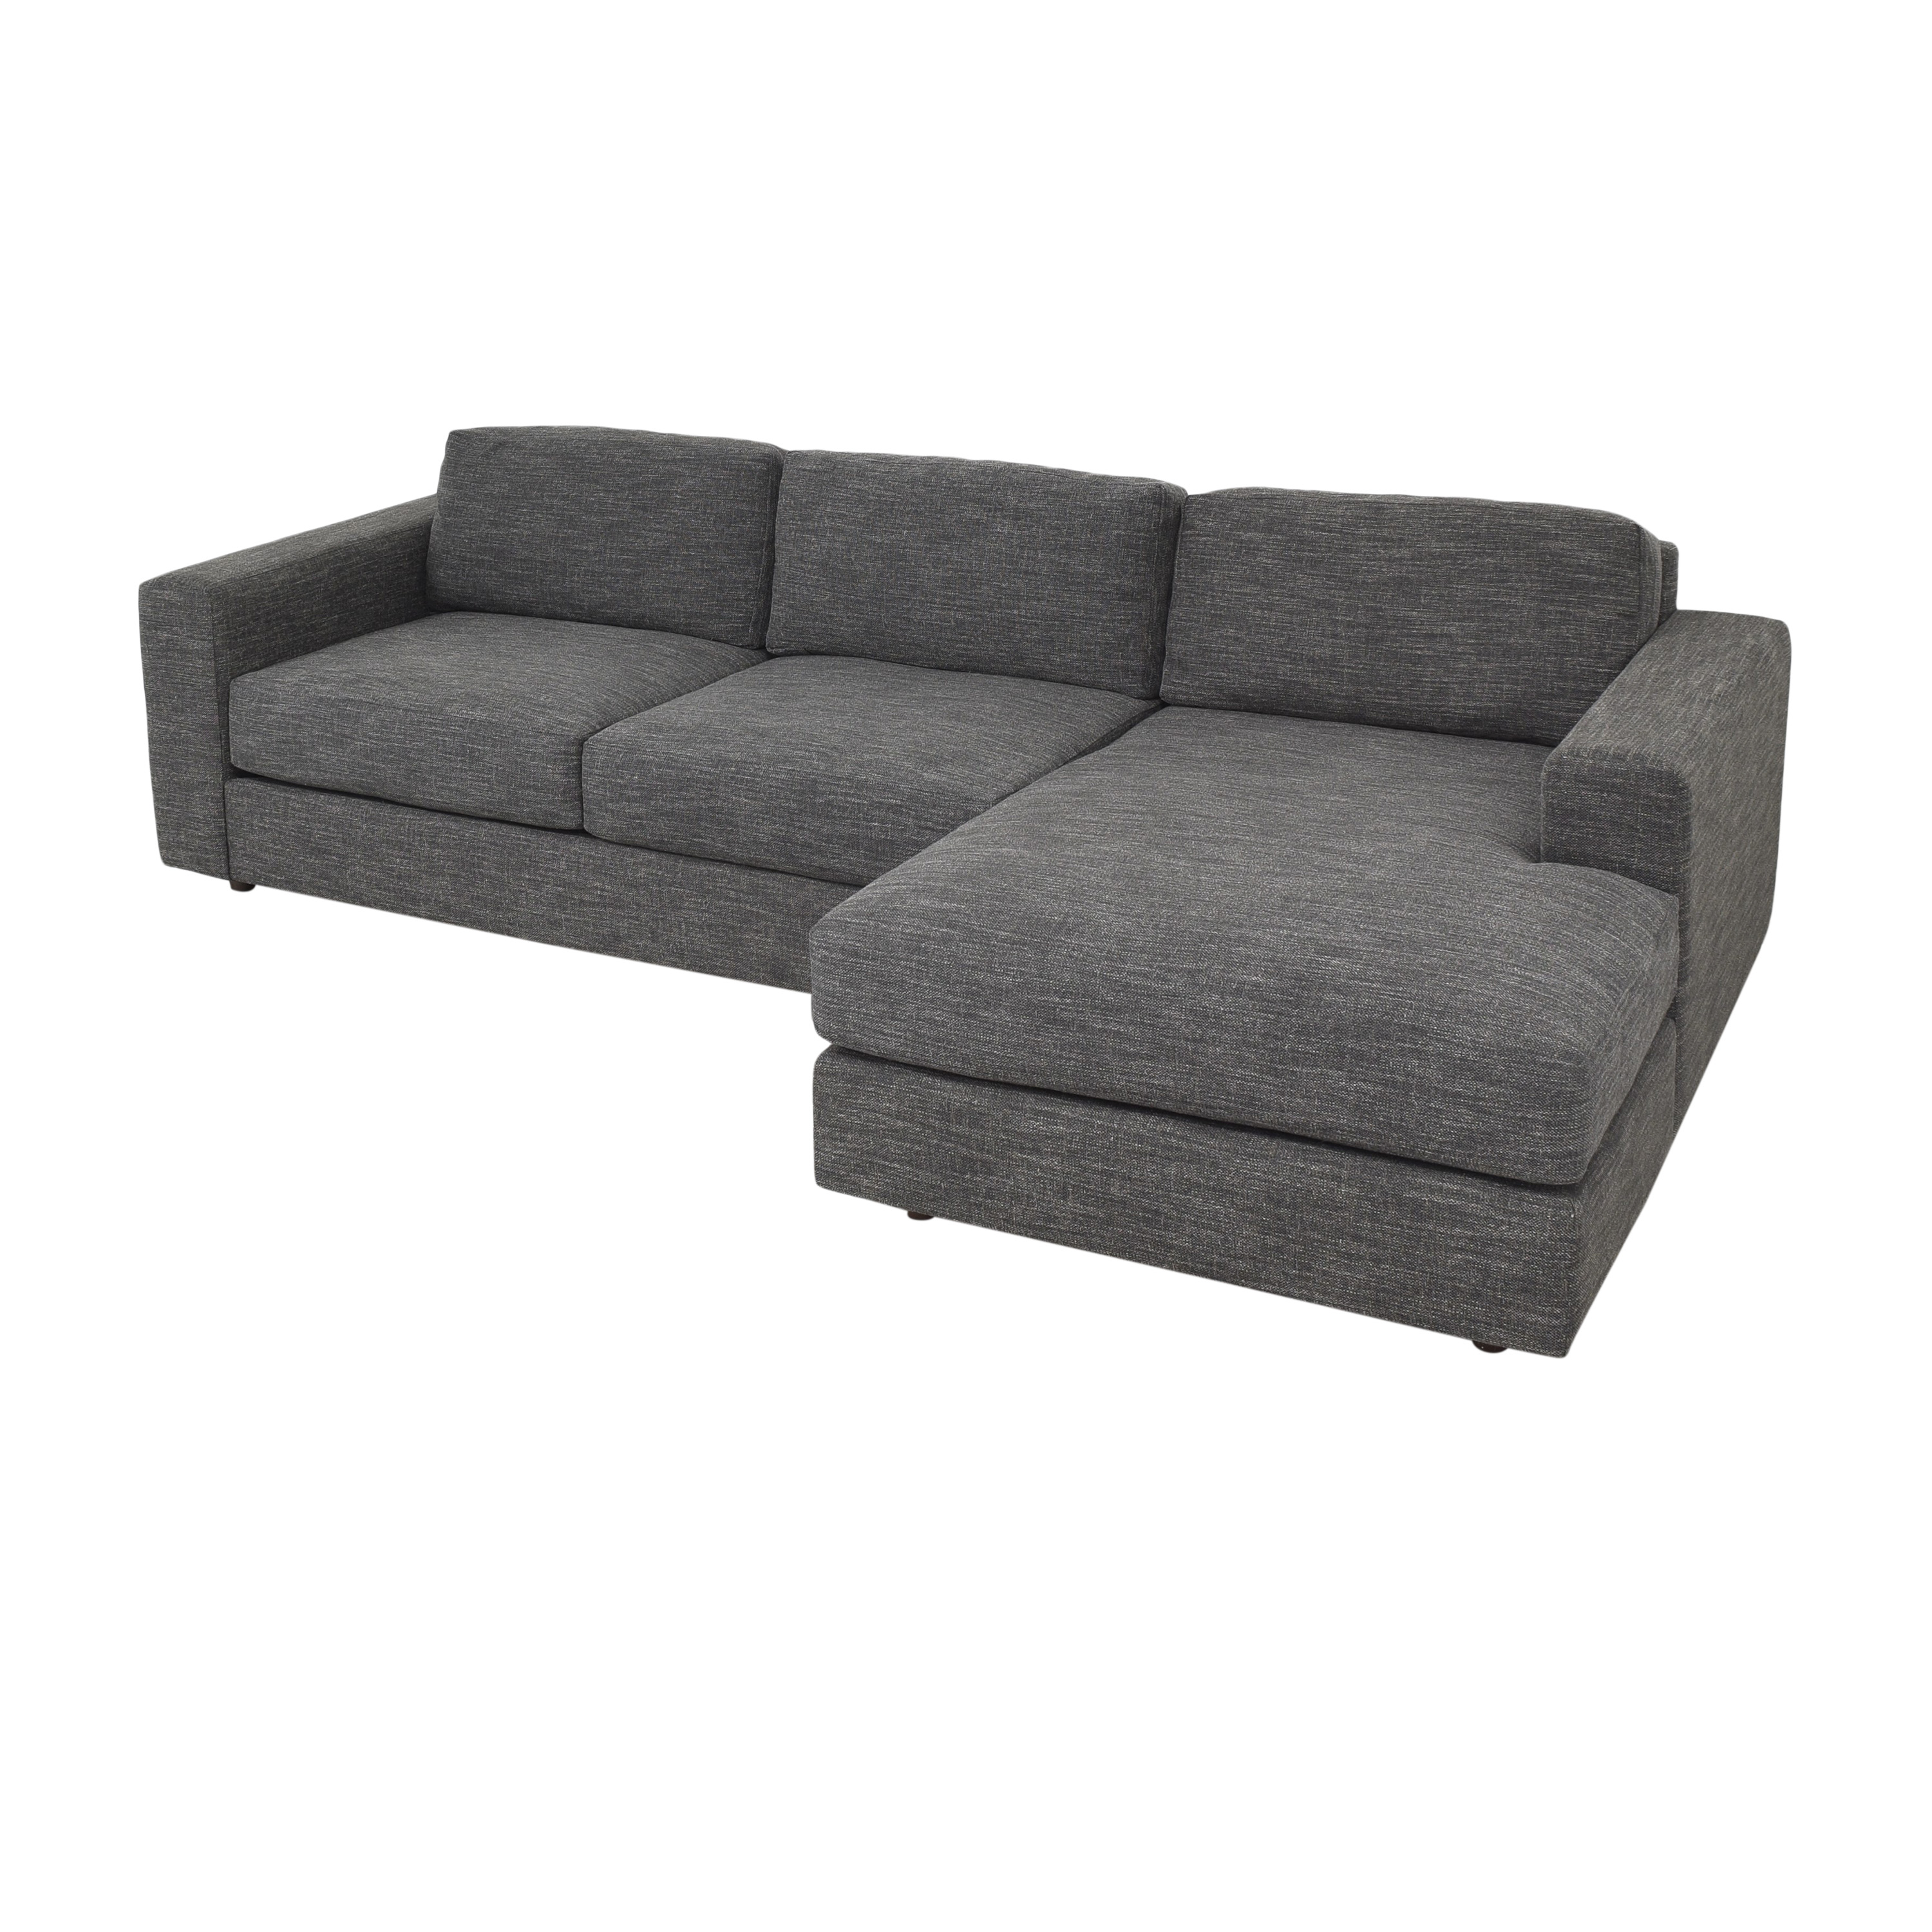 West Elm West Elm Urban Two Piece Chaise Sectional Sofa  second hand